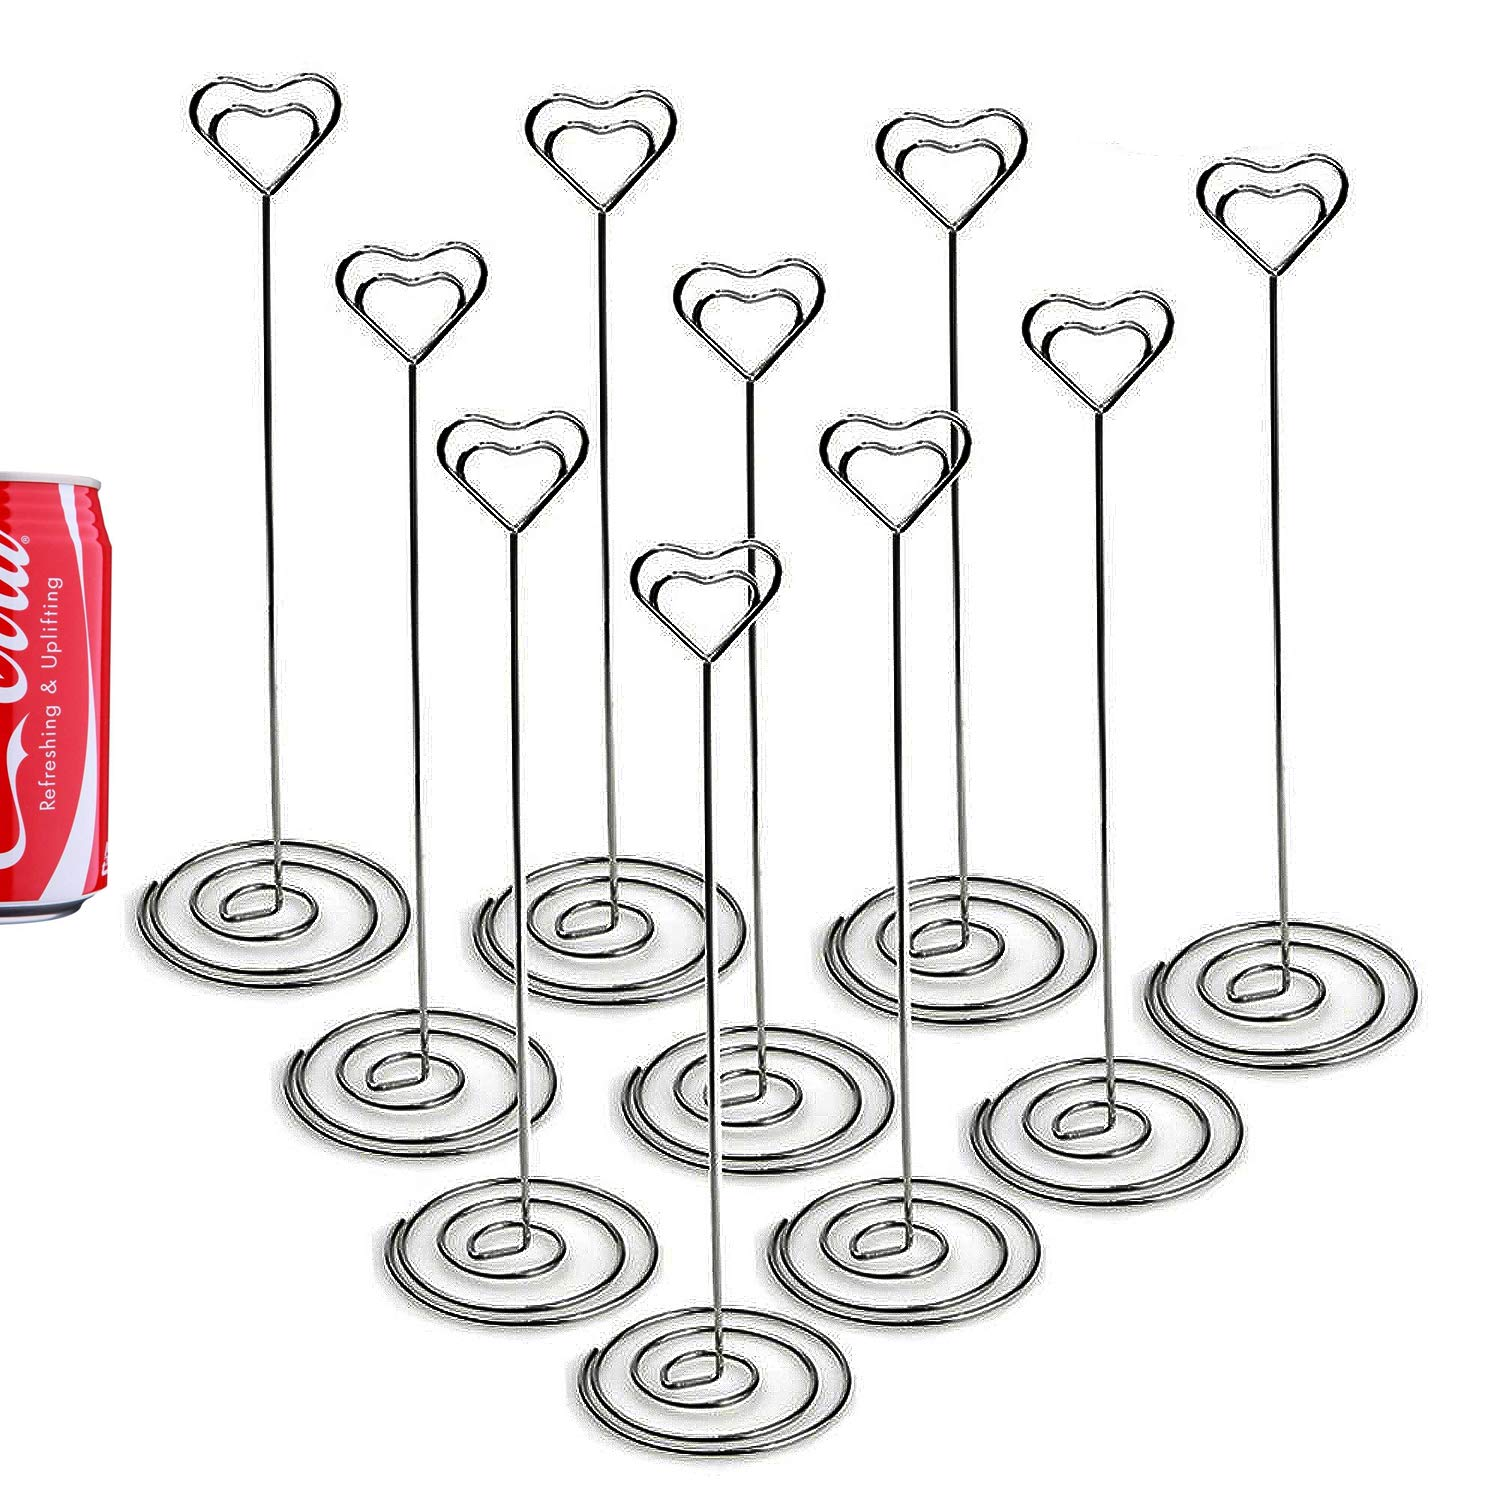 GRACETOP 12pcs Tall Place Card Holders 8.7 Inch Heart Shape Table Number Holder Chrome Plated Metal Funny Heart and Vortex Clip Desktop Decoration Memo Holder Stand Tabletop Card Holder